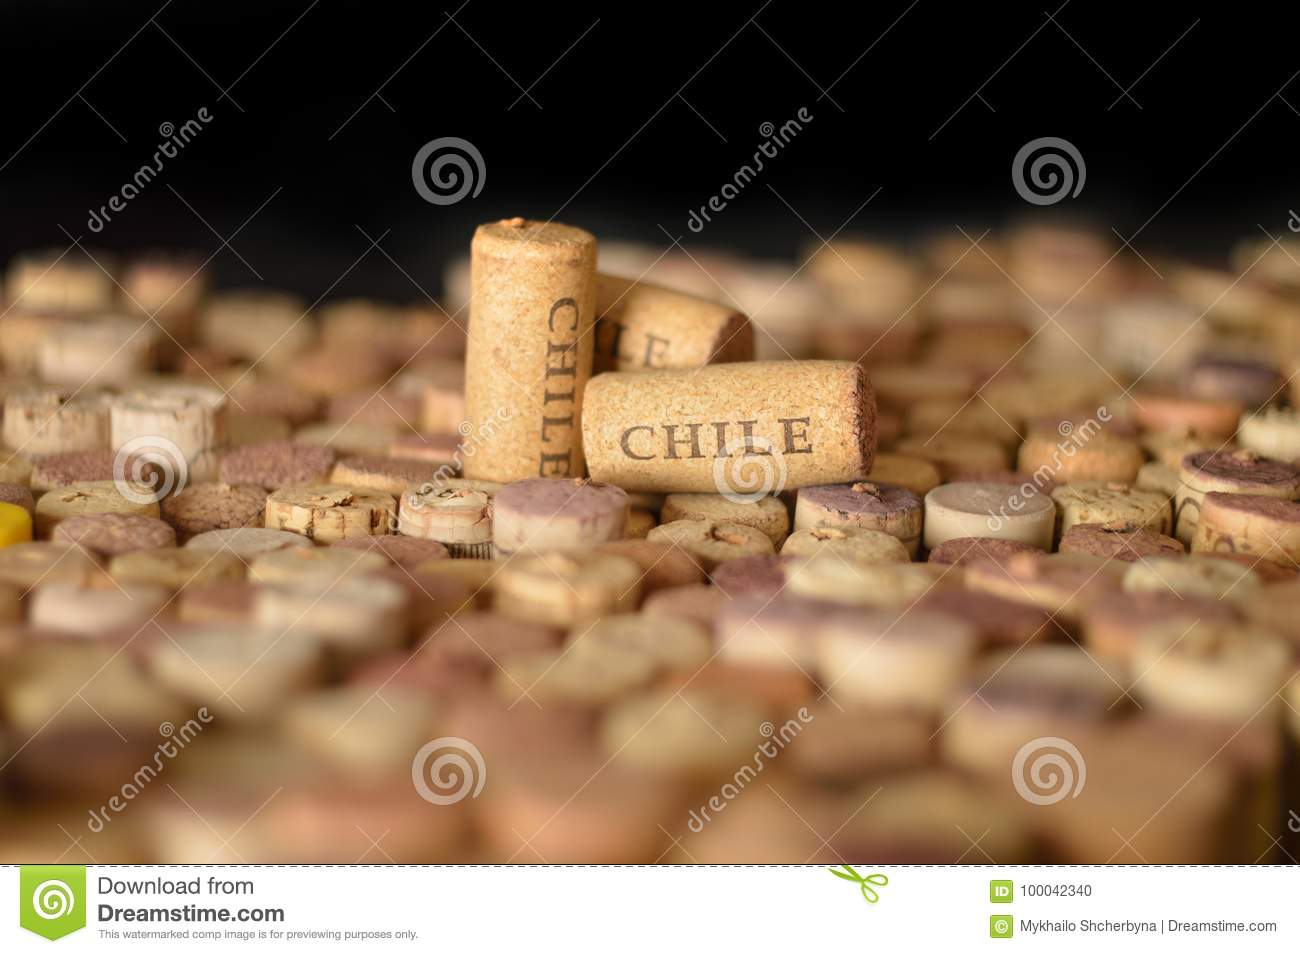 Countries Winemakers Chile S Name On Wine Corks Stock Photo Image Of Focus Grape 100042340